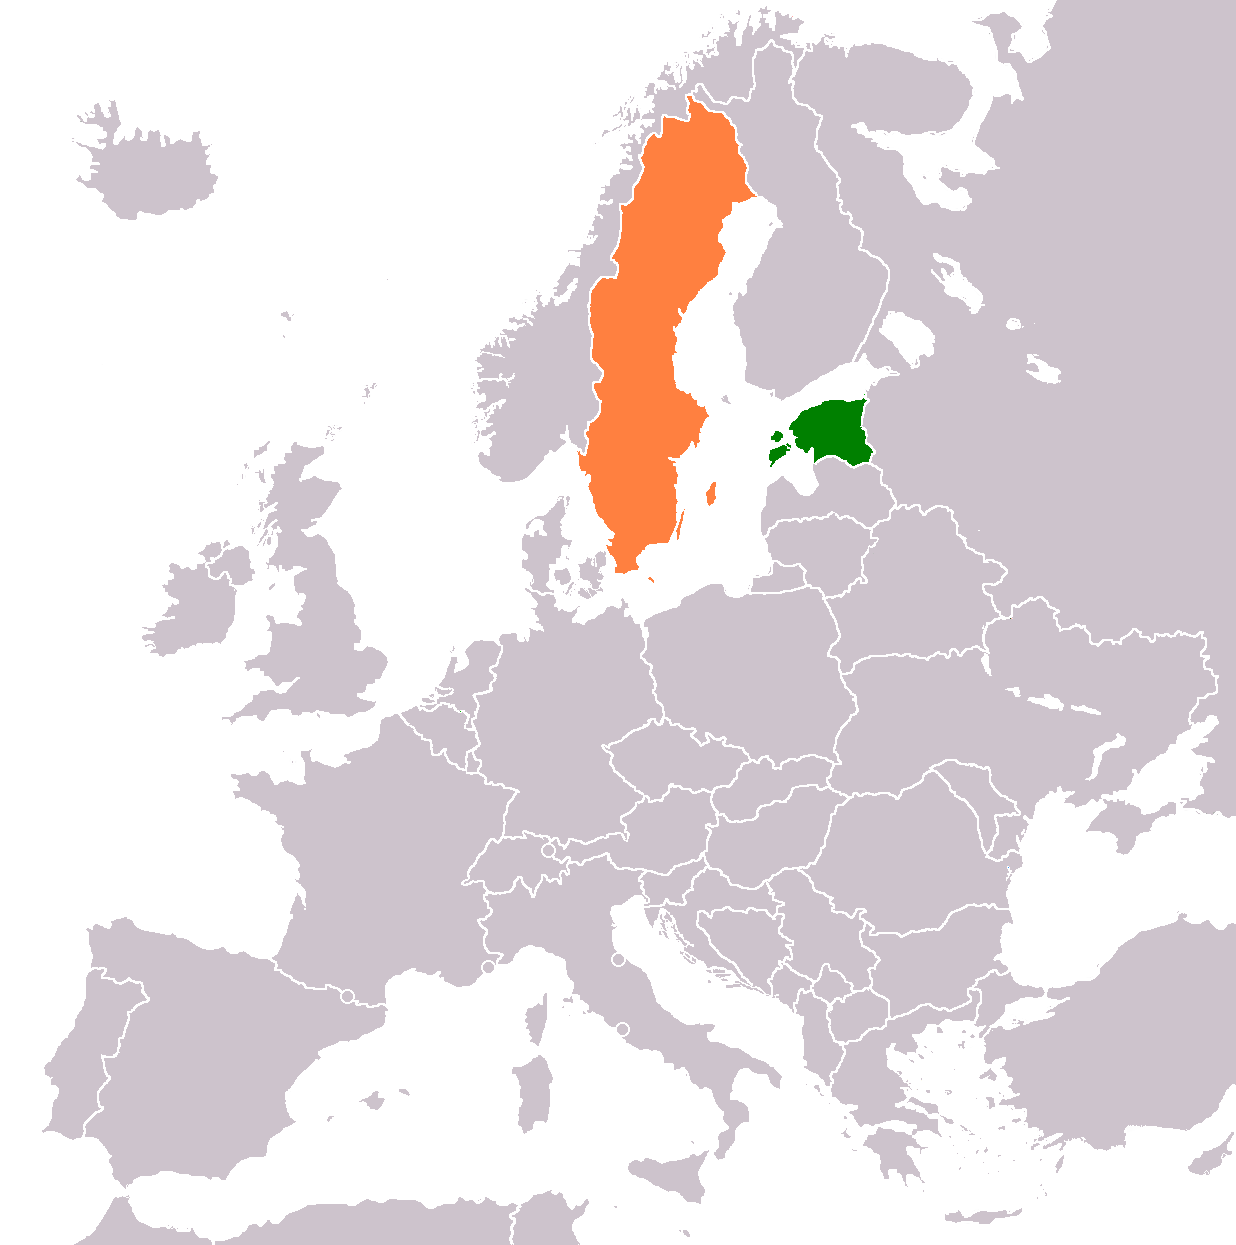 FileEstonia Sweden Locatorpng Wikimedia Commons - Sweden map blank